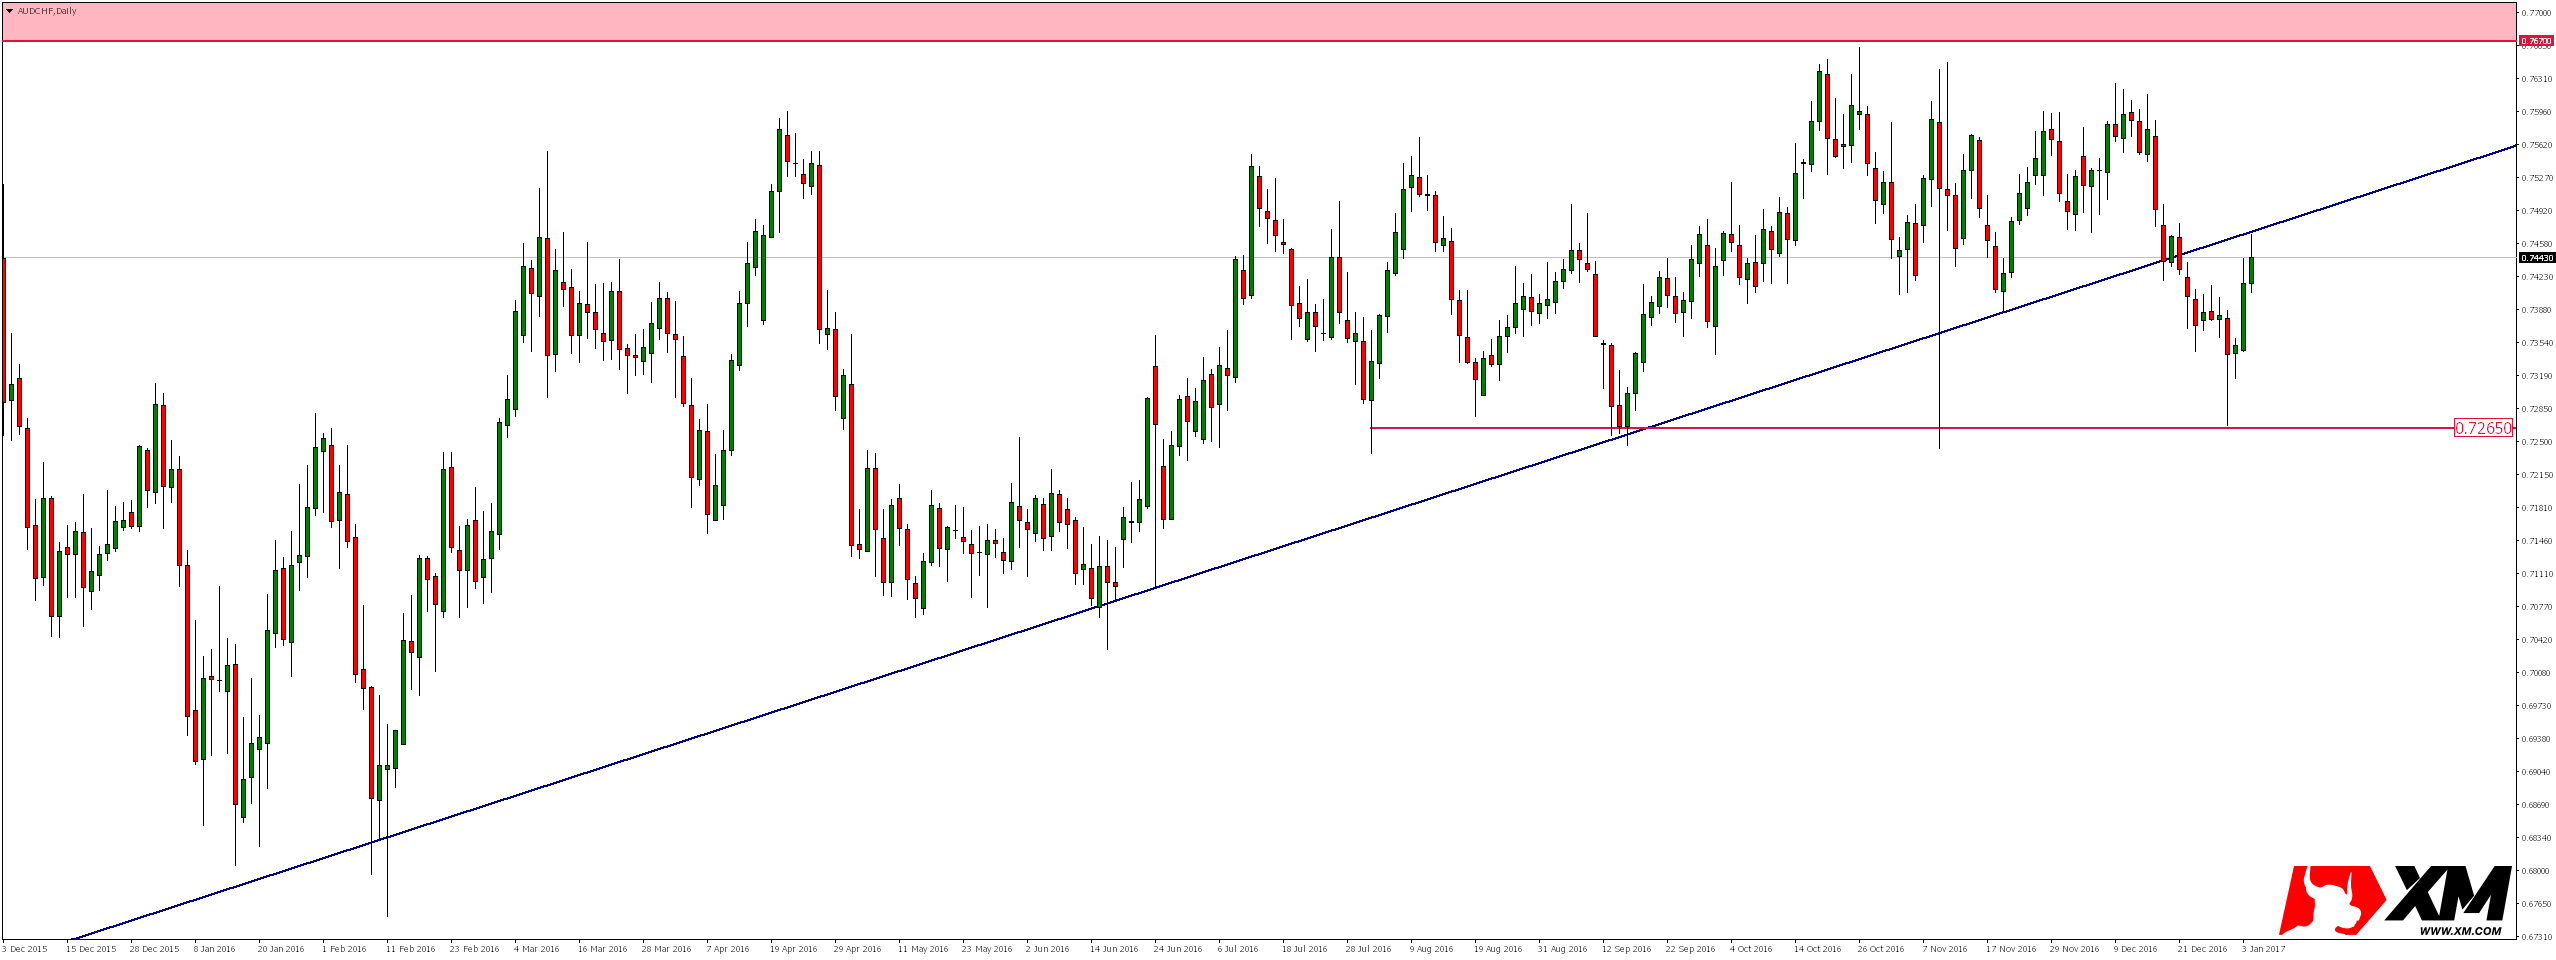 AUDCHF Daily